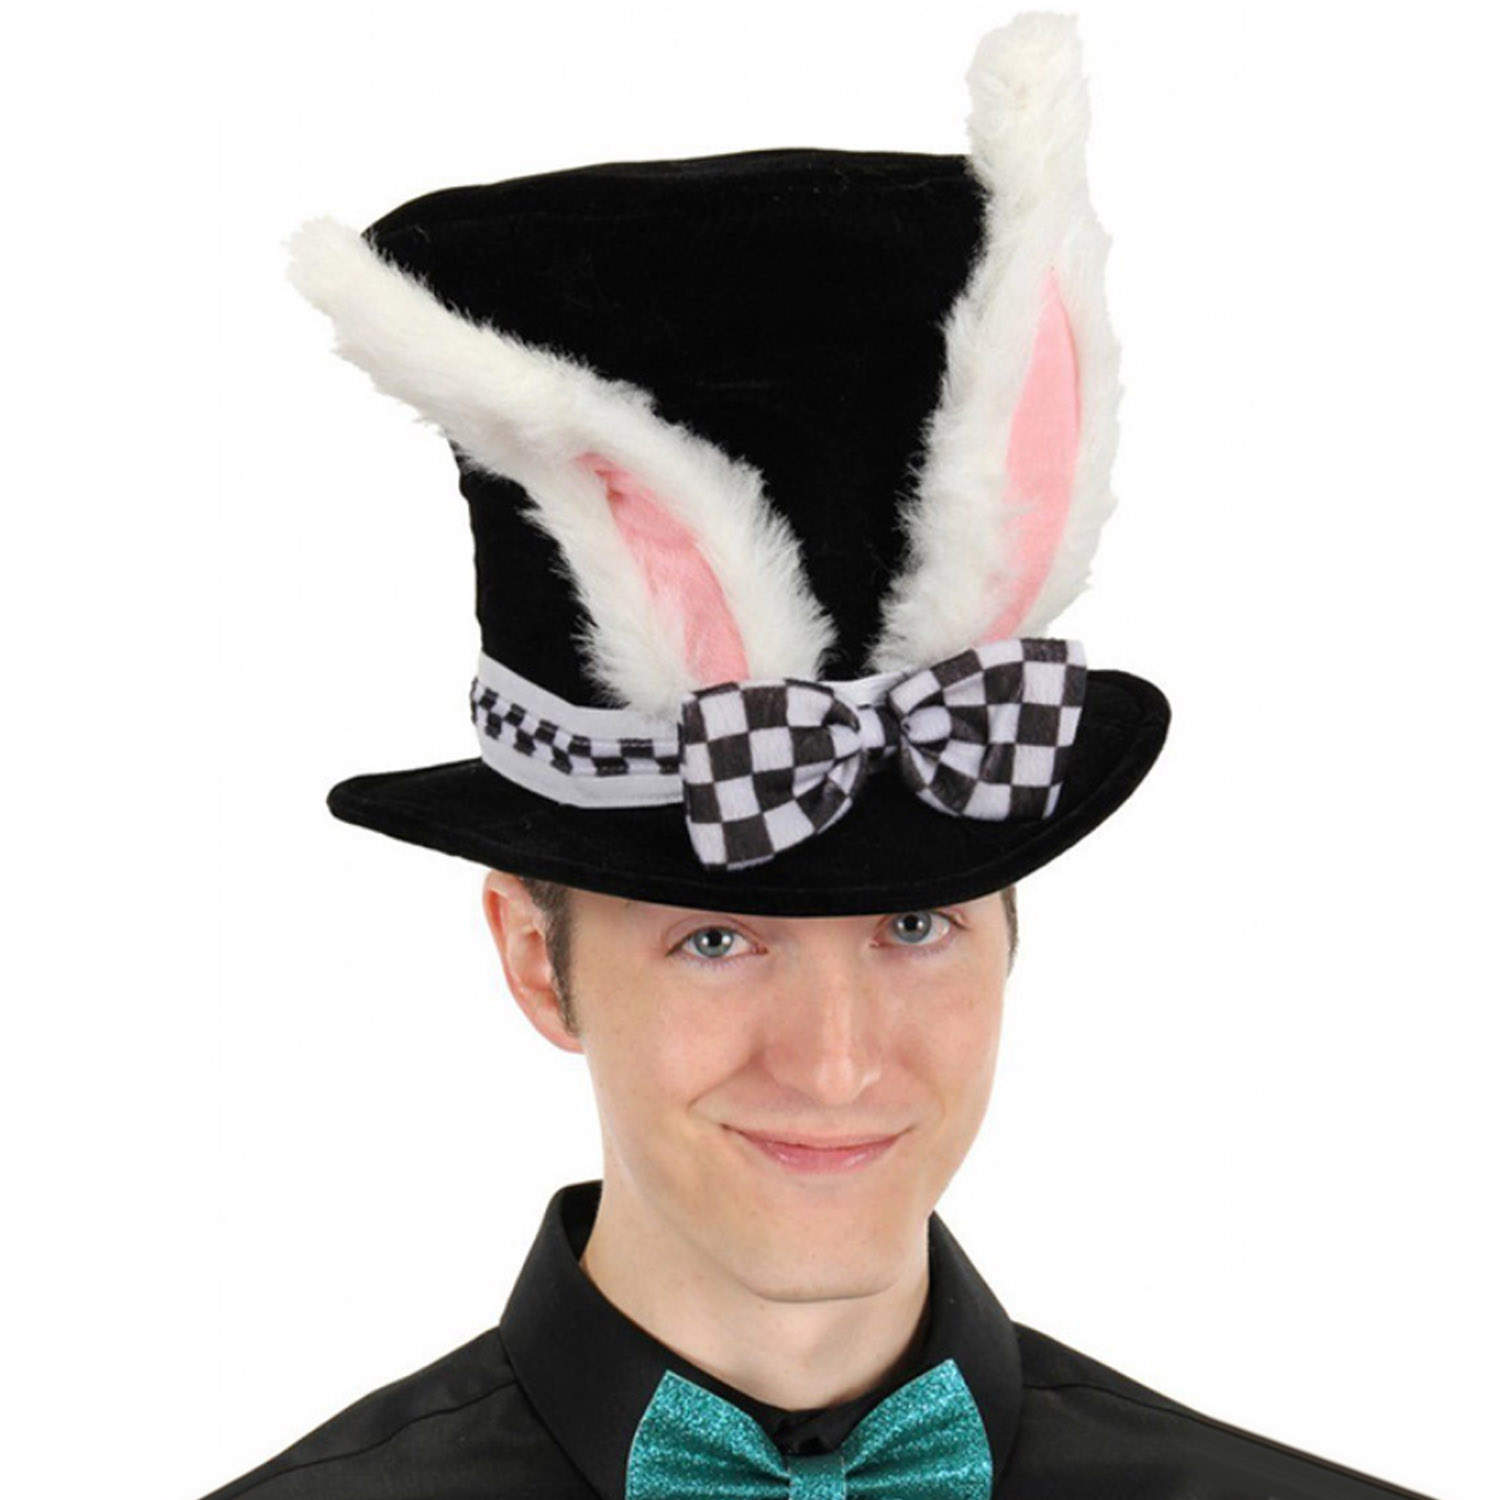 Besegad Lovely Funny Bunny Rabbit Ear Easter Top Hat For Festival Birthday Masquerade Cosplay Party Photo Props Costume Supplies